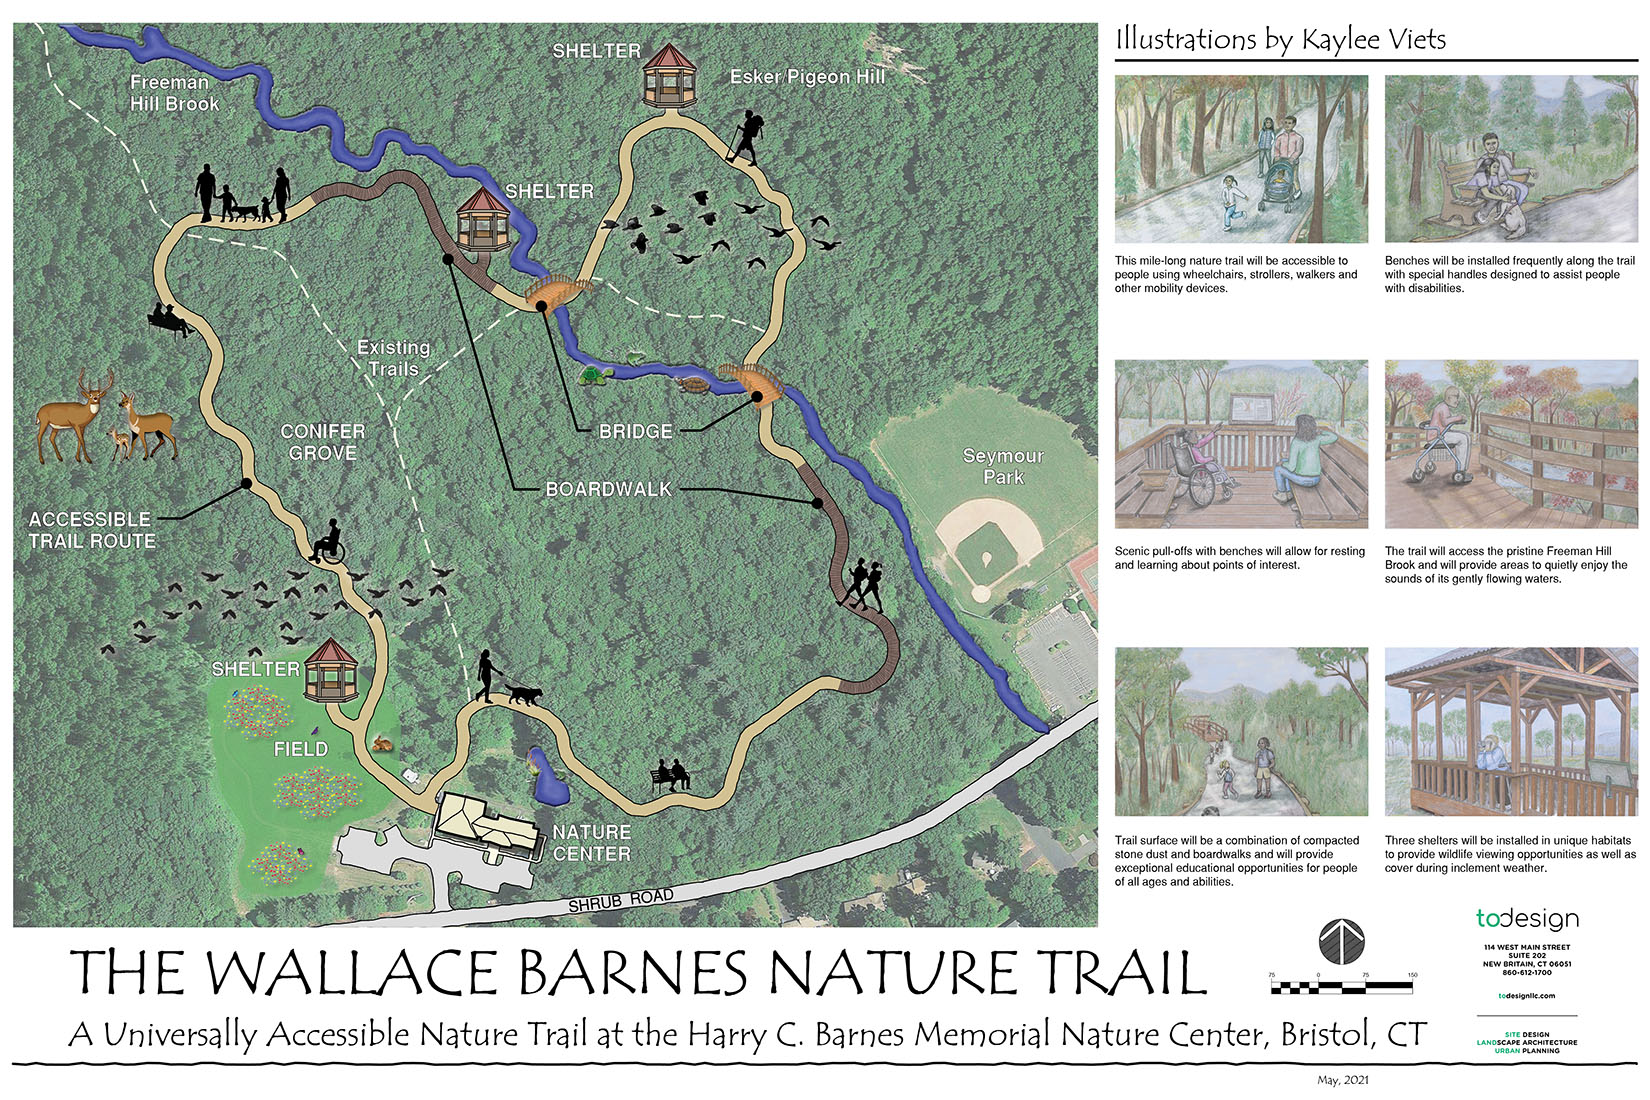 ELCCT's New Accessible Trail Project!